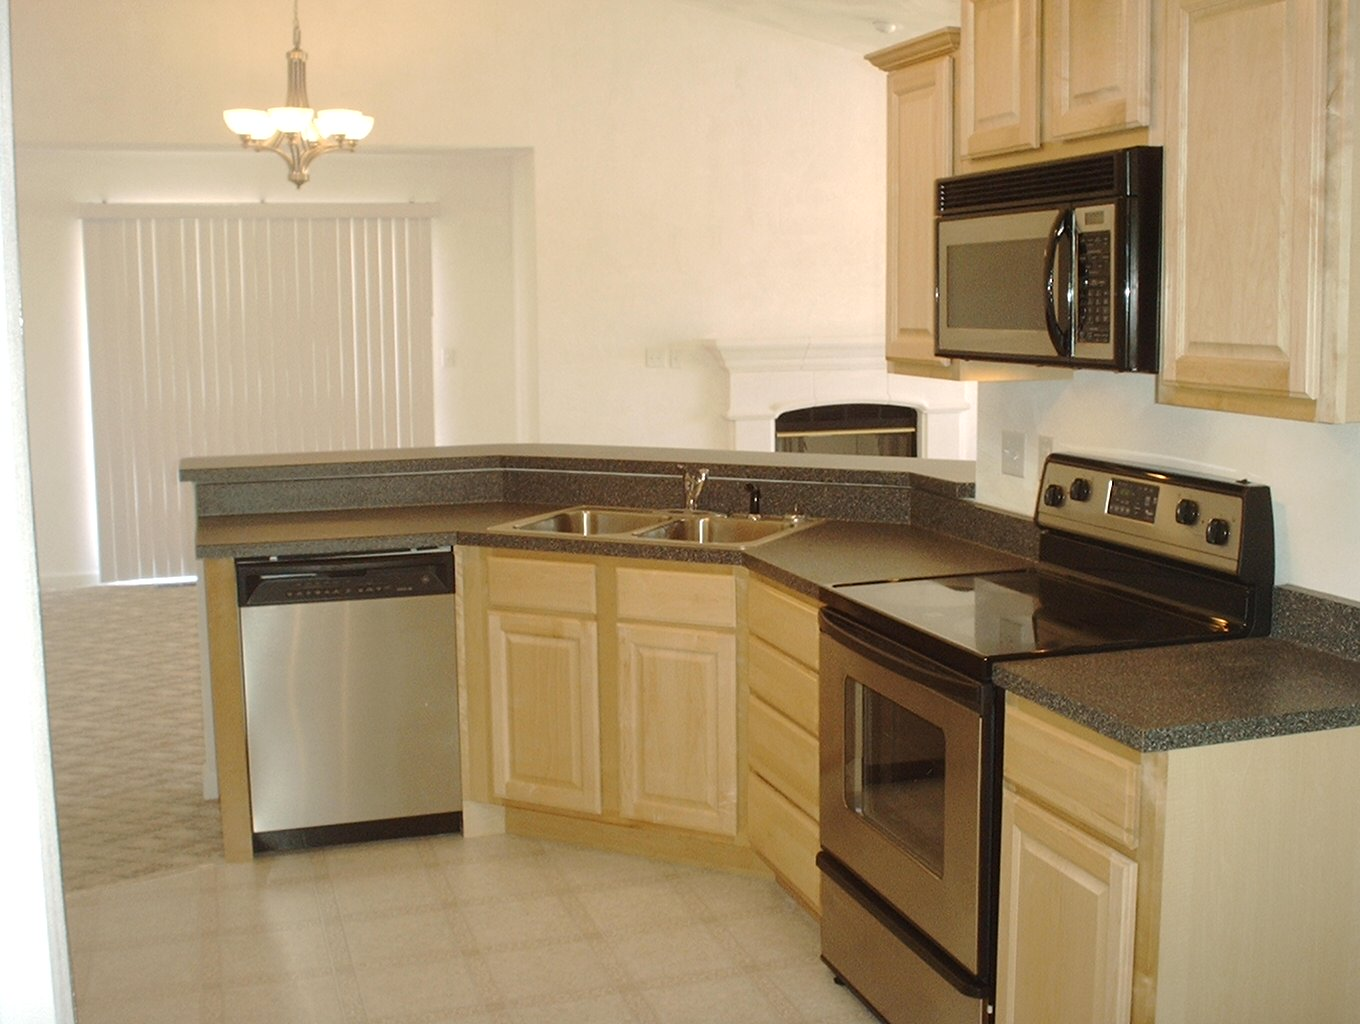 Height between stove and microwave - A Range Hood